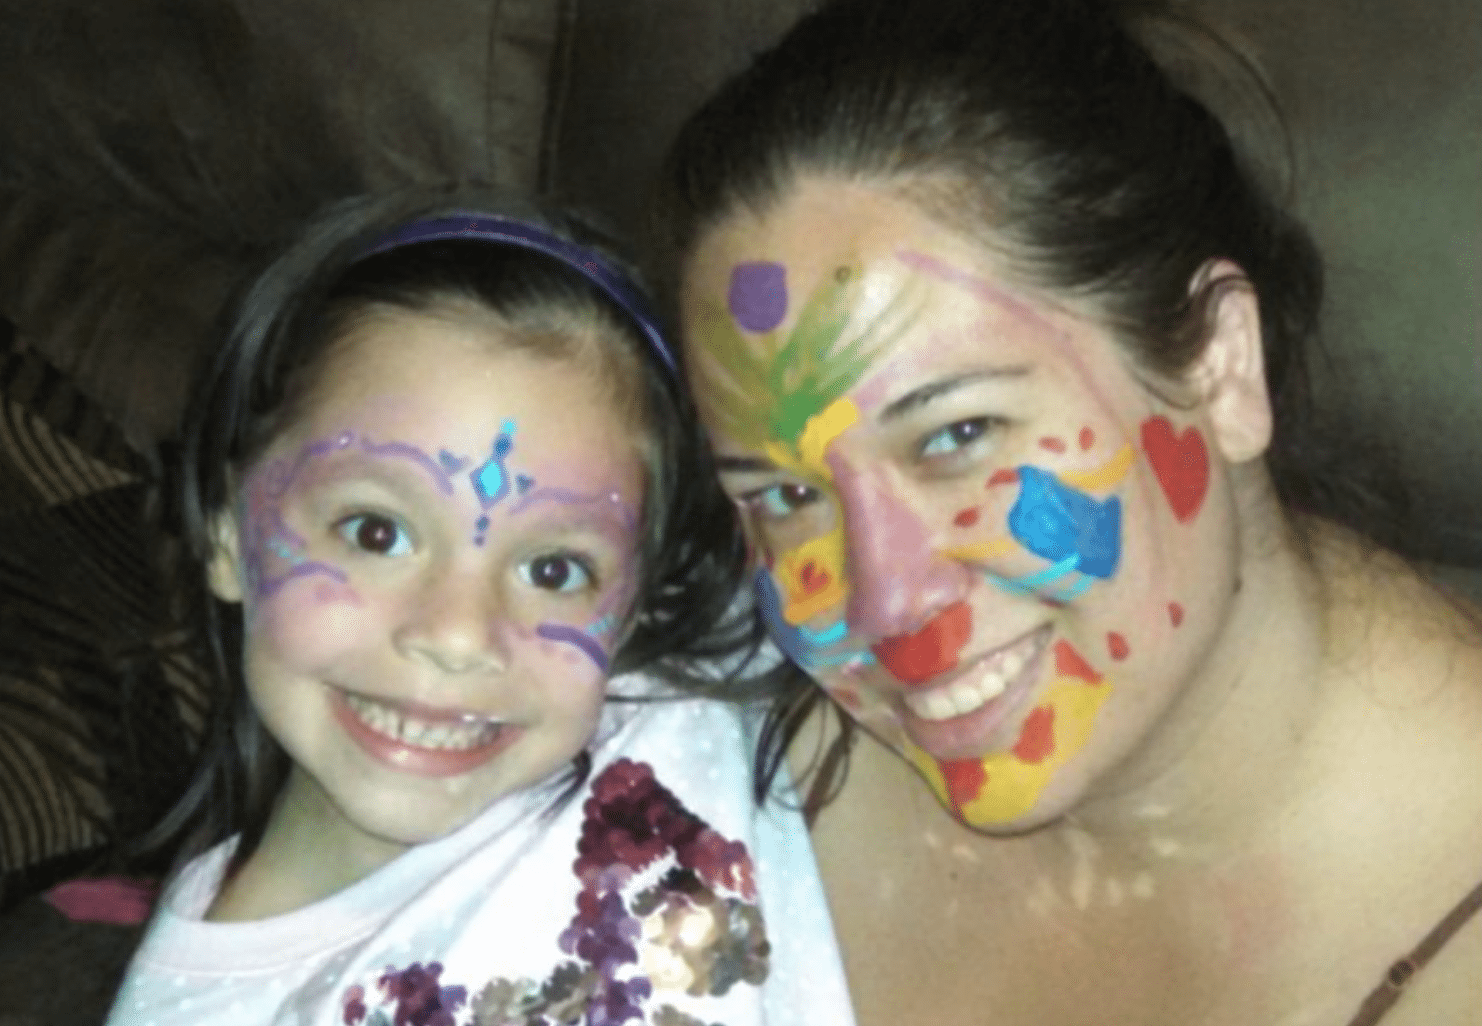 The Face Painter's Face